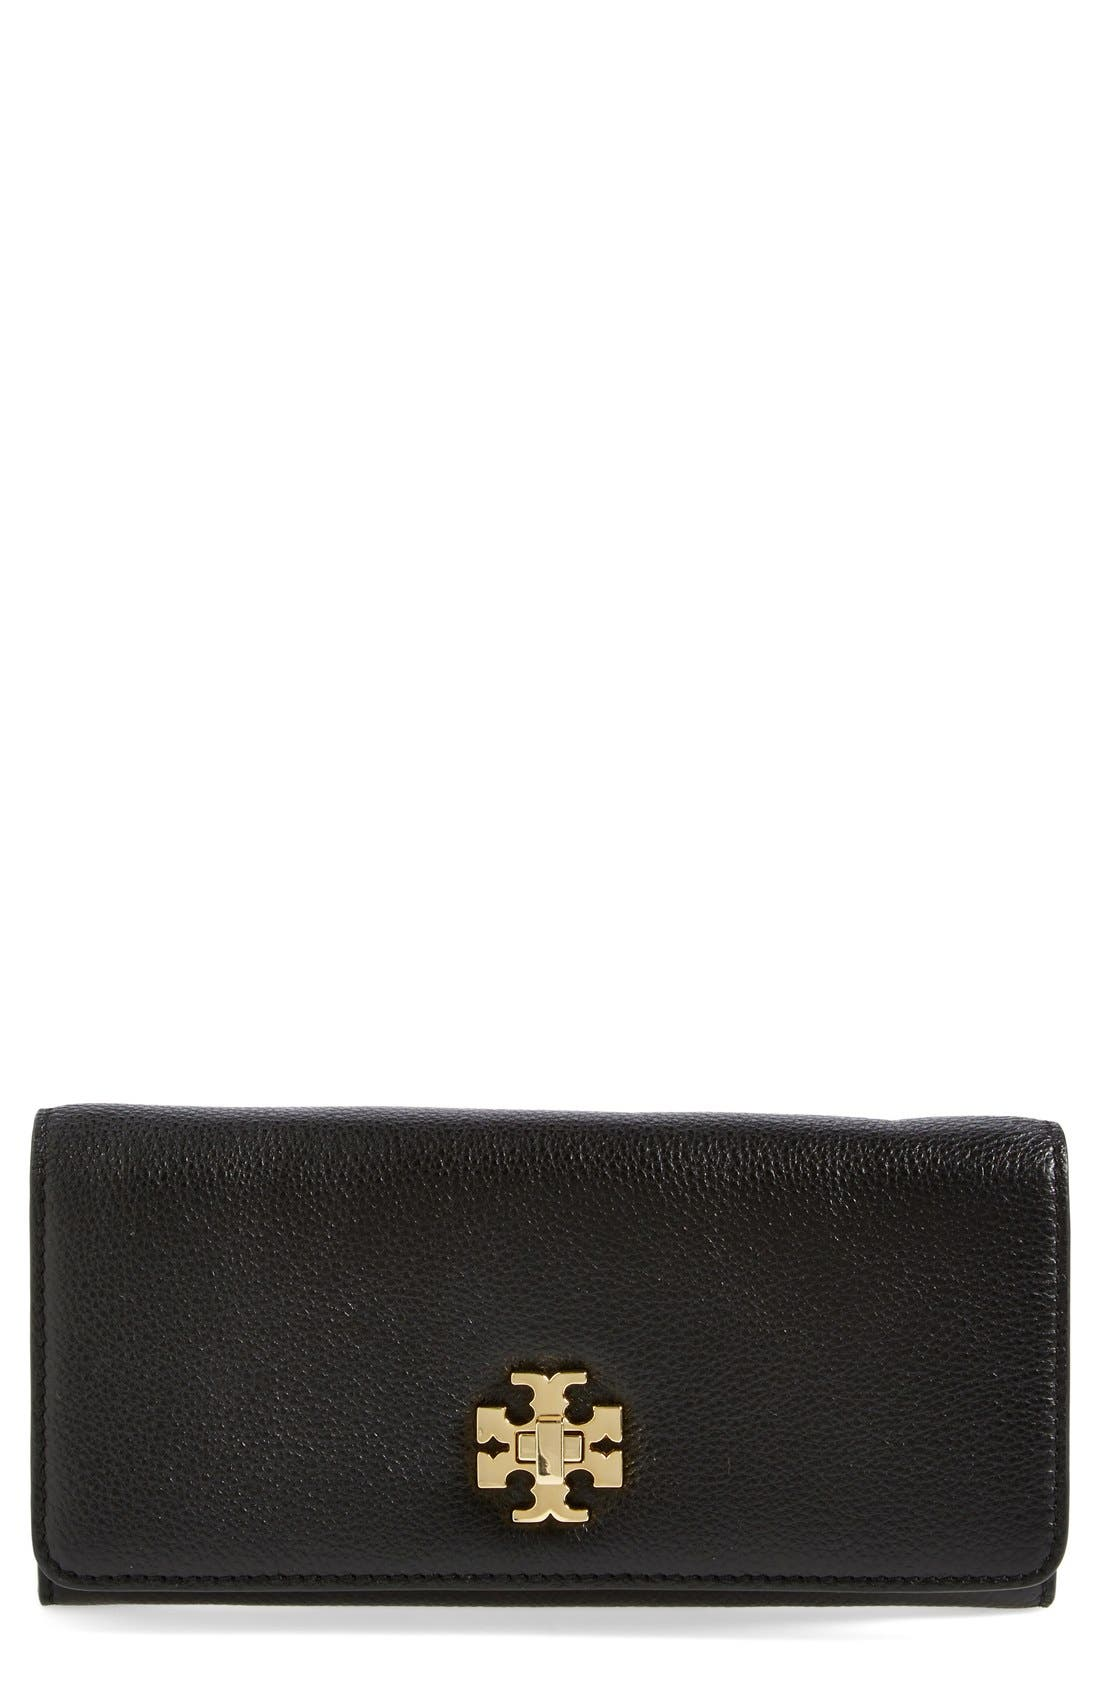 Main Image - Tory Burch 'Mercer' Leather Envelope Wallet